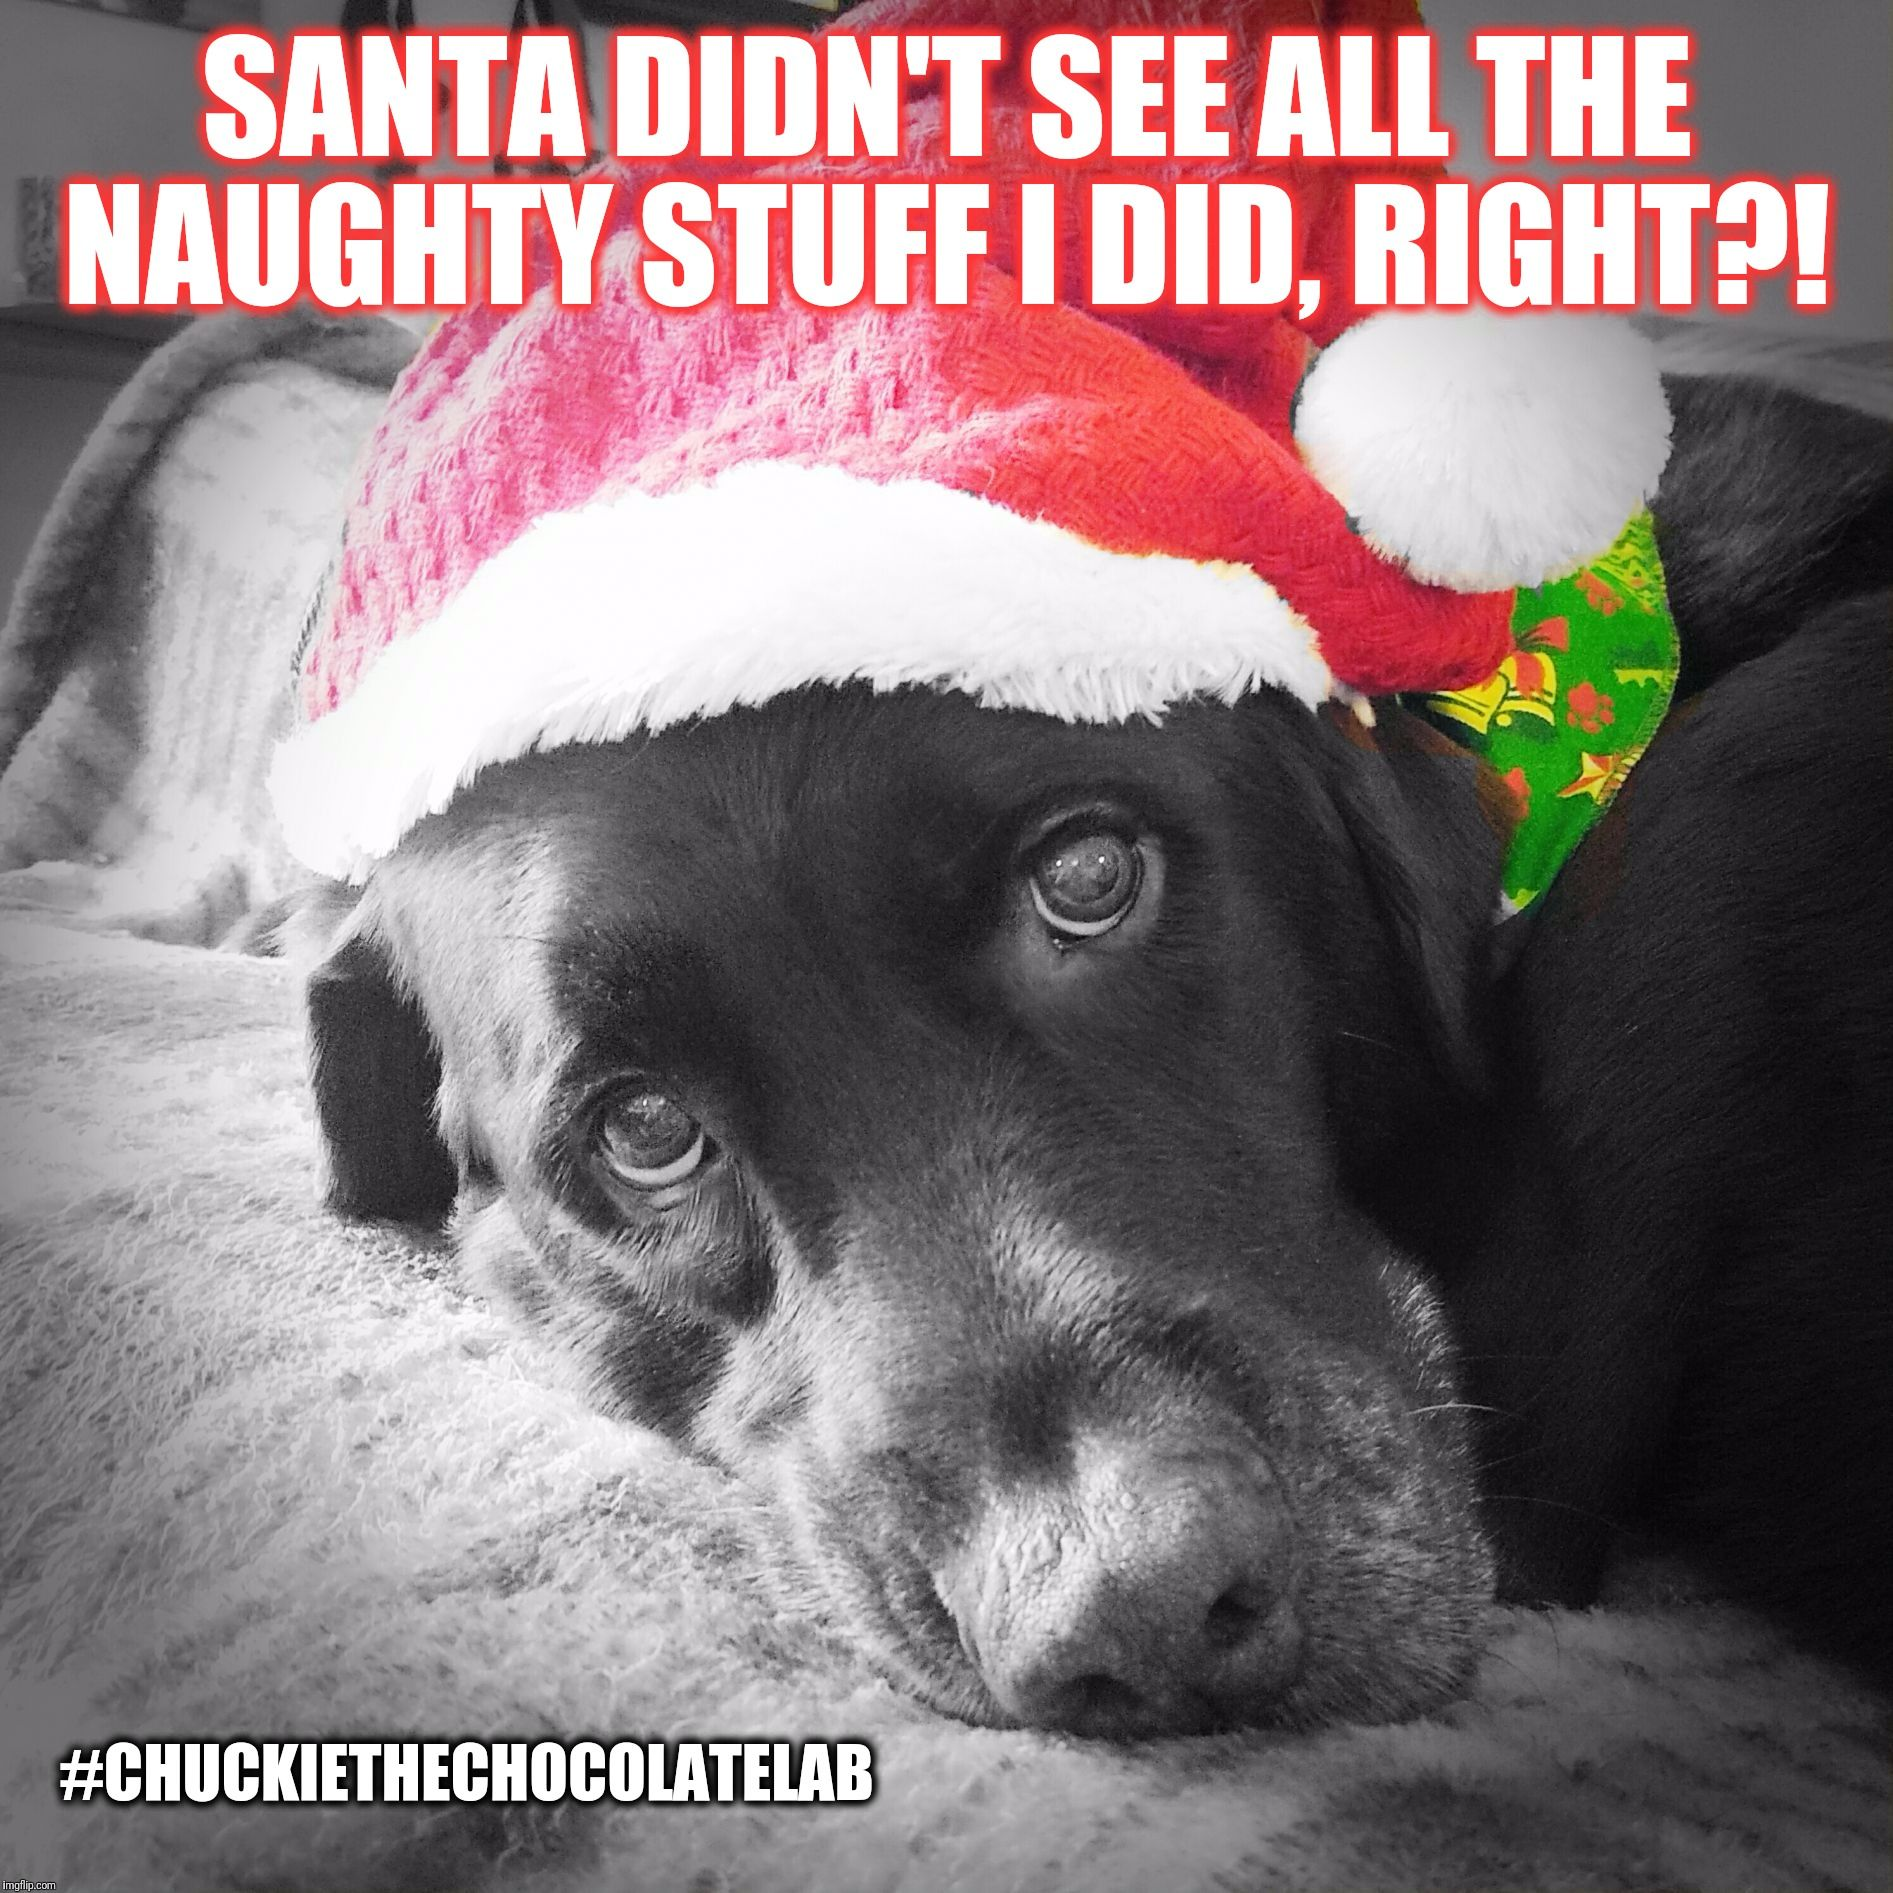 Santa didn't see all the naughty stuff I did, right